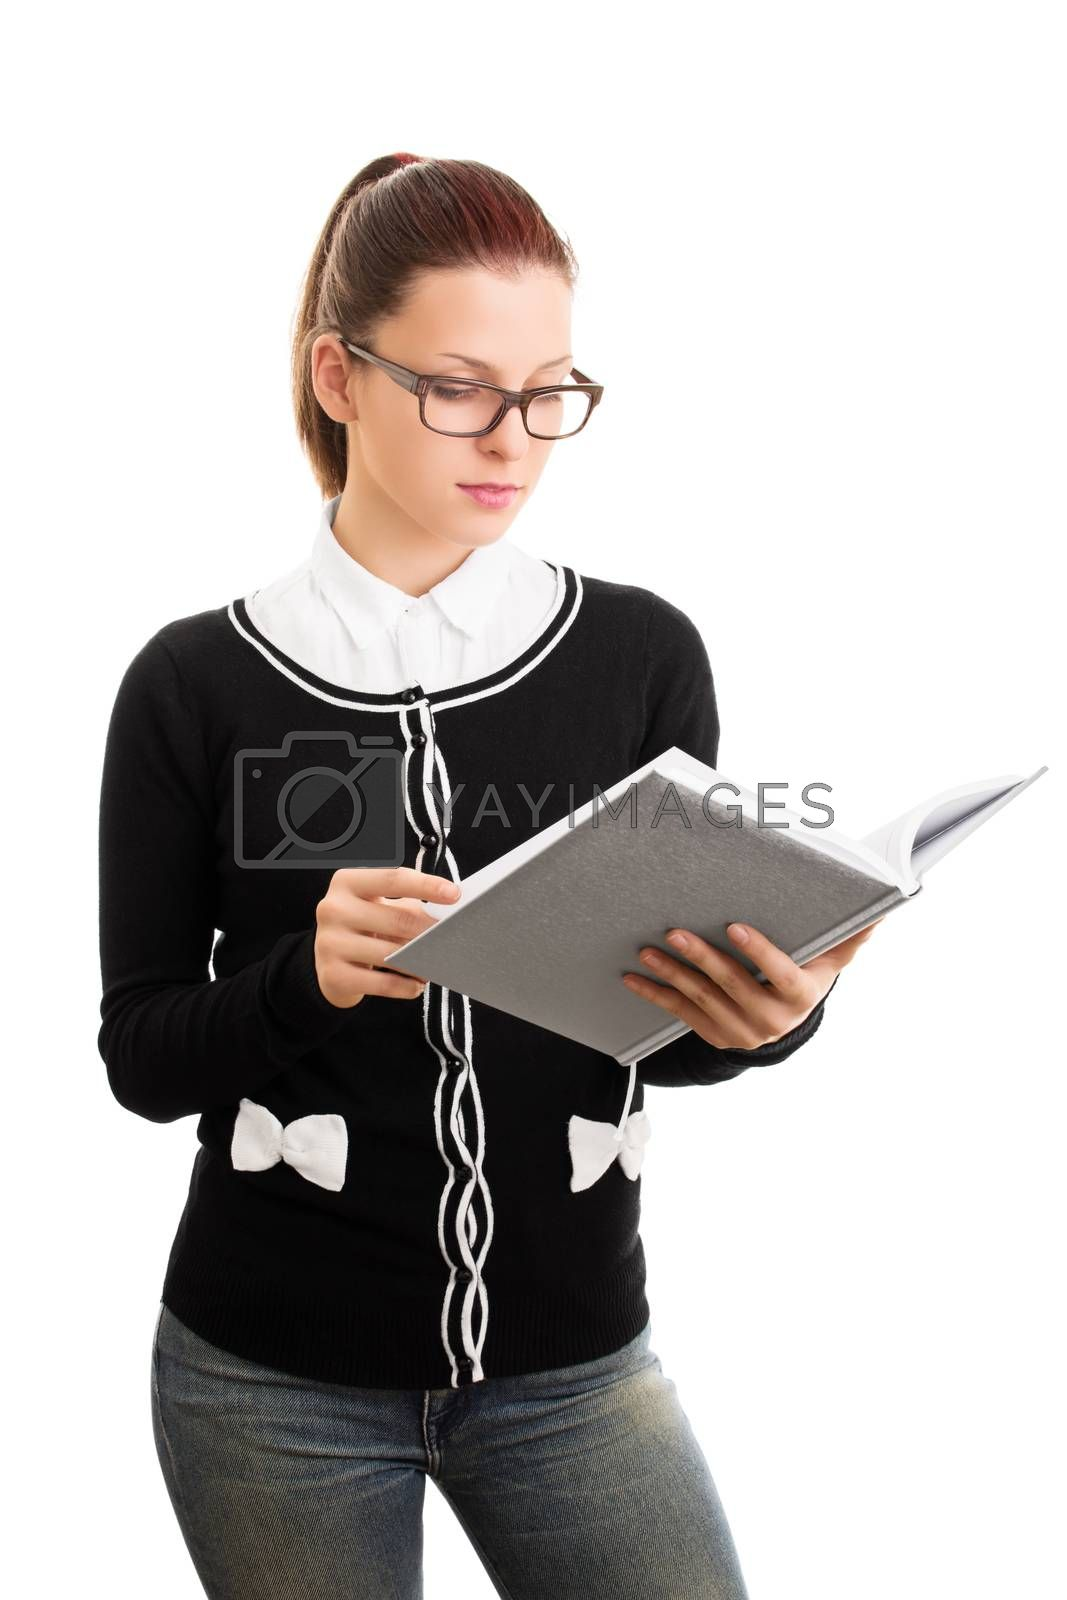 Reviewing notes. Reading something. Beautiful young student girl with glasses looking at an open notebook, isolated on white background.